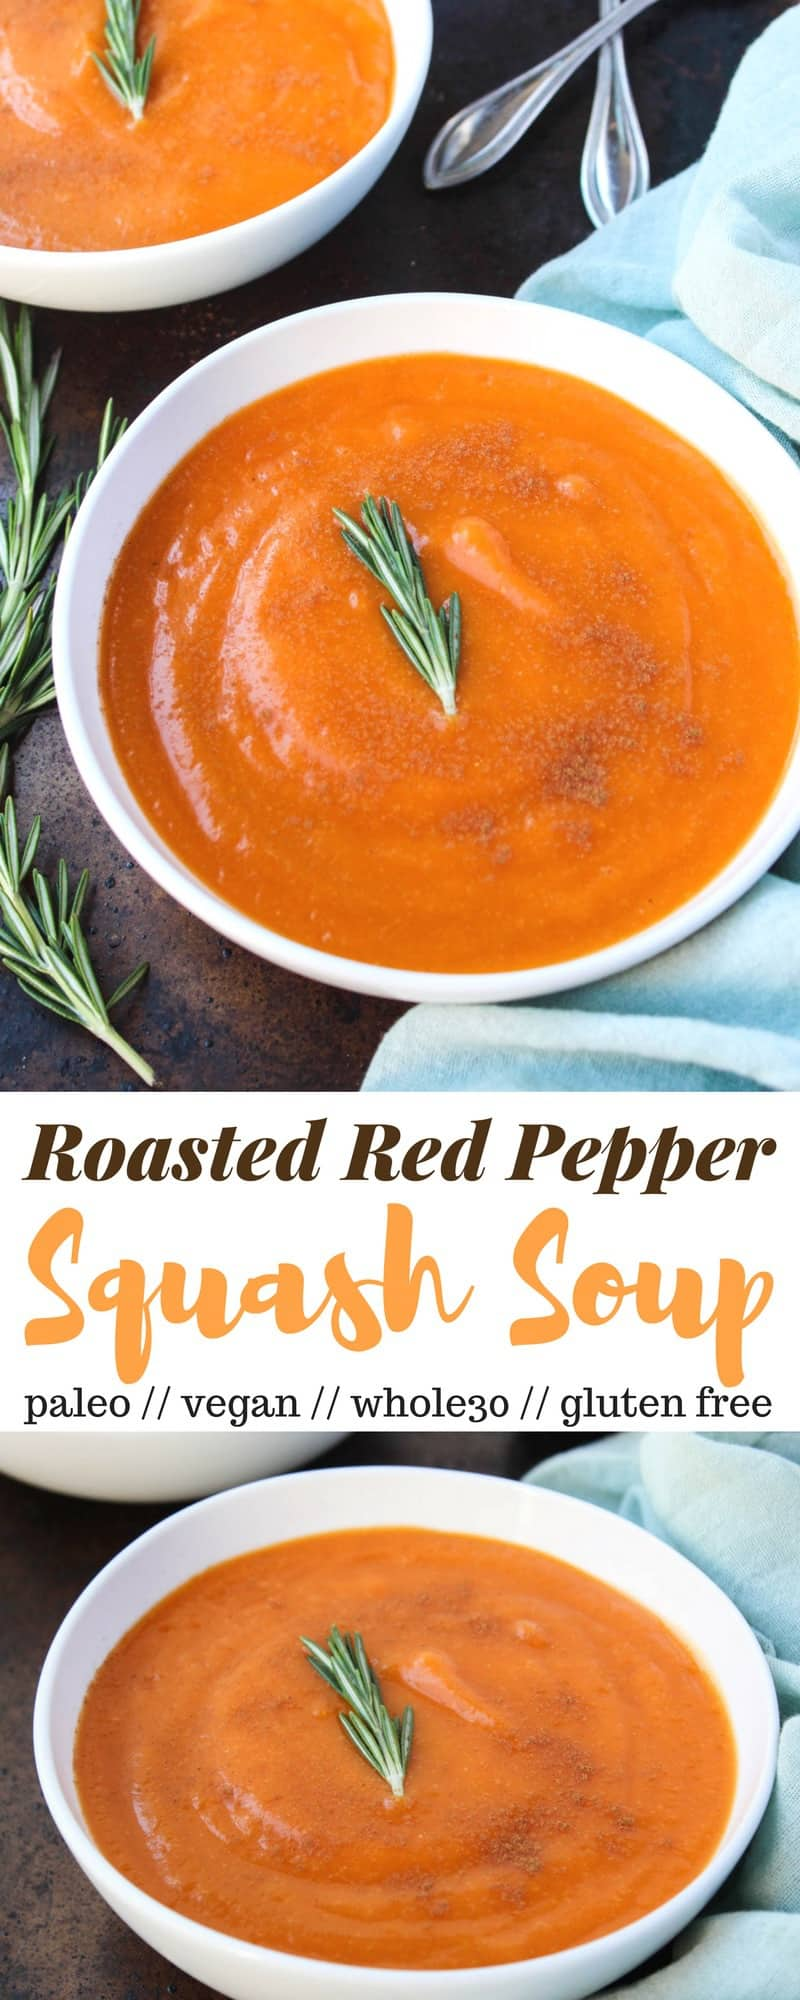 An easy,creamyveggie based soup, thisRoasted Red Pepper & Squash Soup is perfect for chilly nights. A few ingredients make it vegan, paleo, dairy free, and Whole30 compliant - Eat the Gains